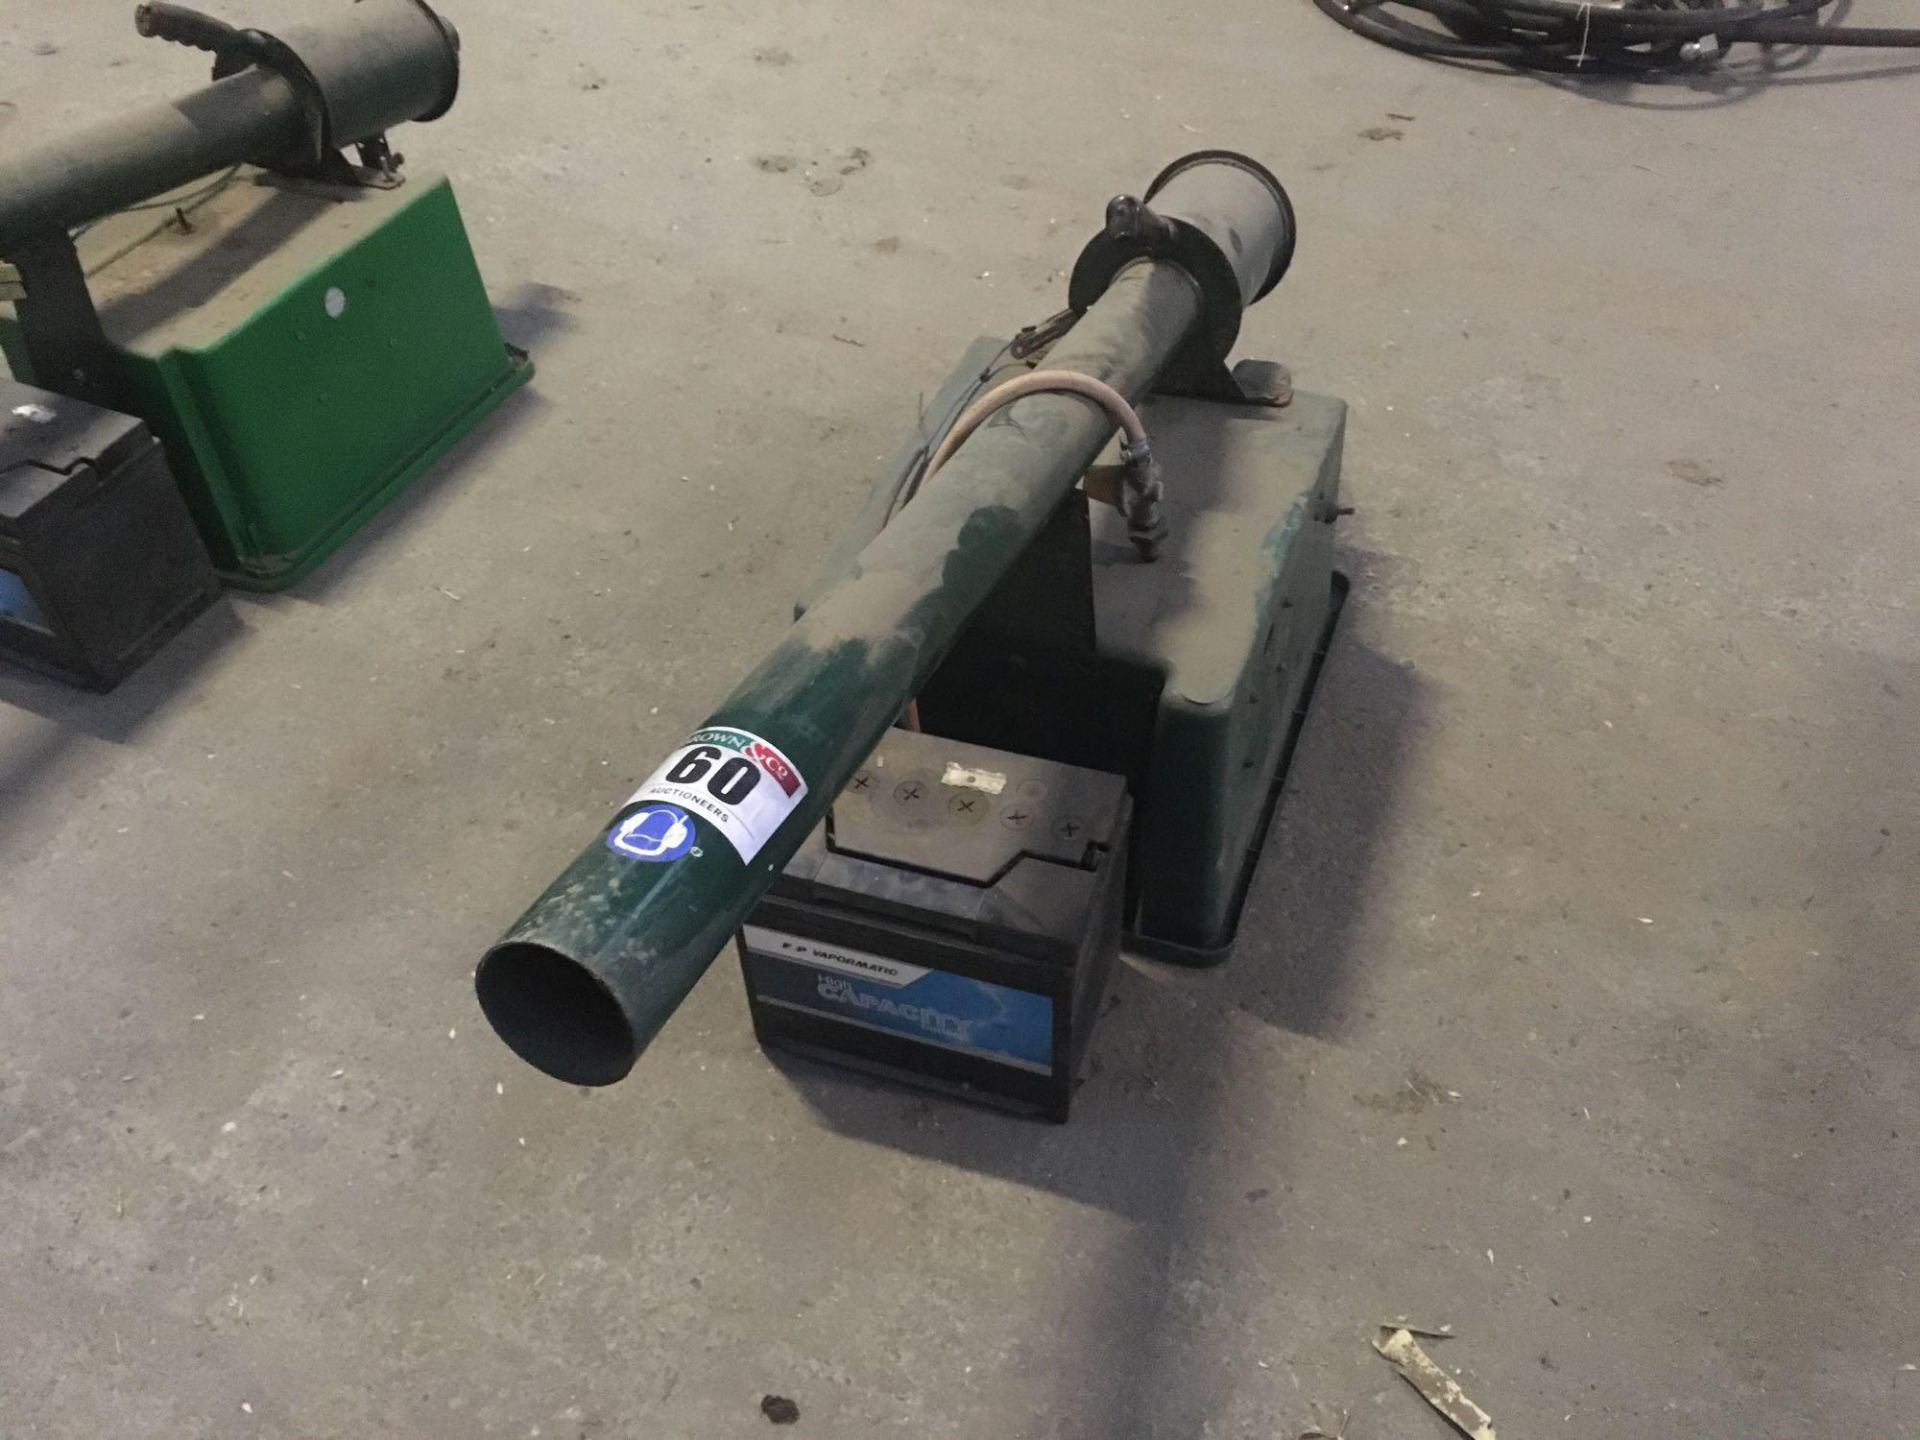 Fairbang with bird scarer and battery